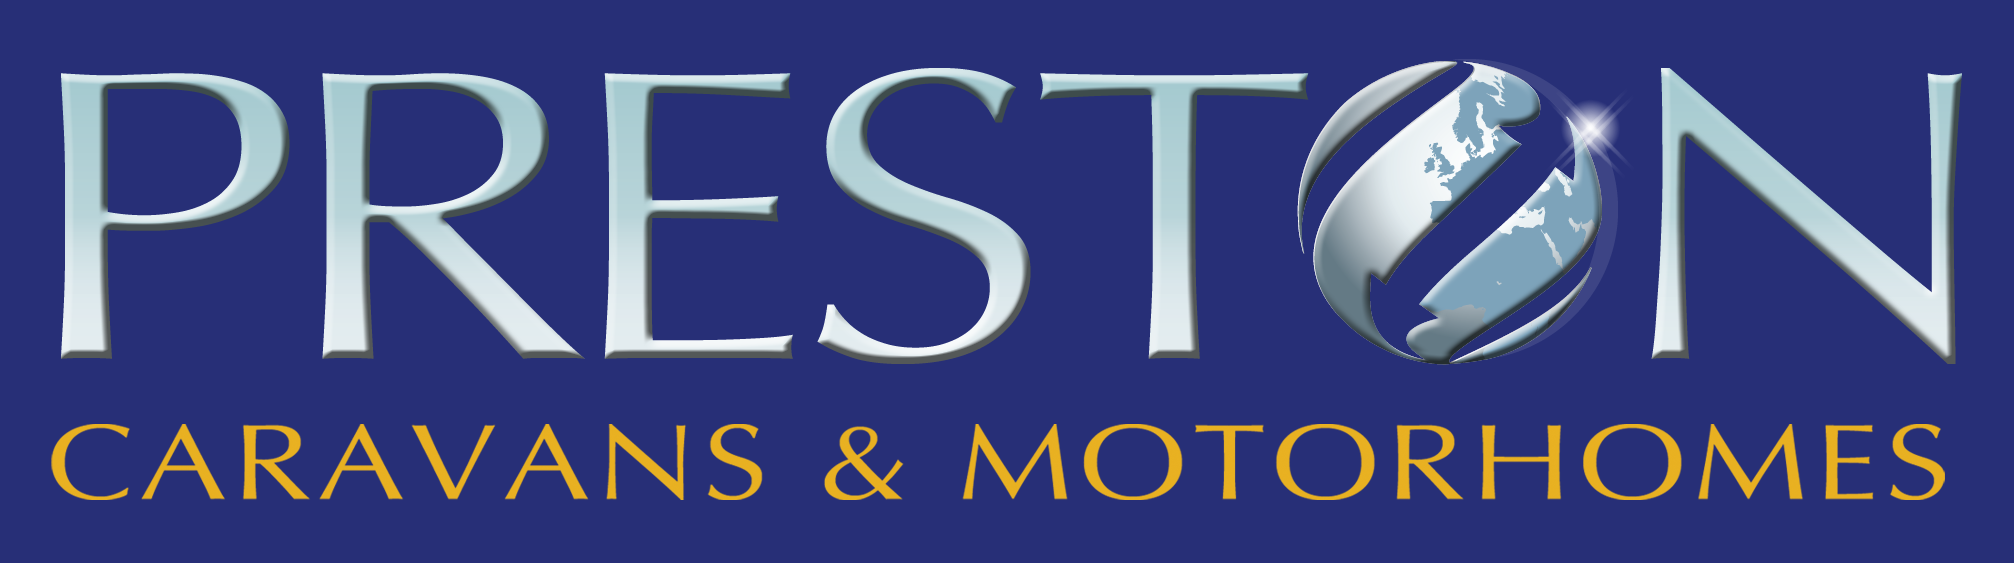 Preston Caravans & Motorhomes Ltd